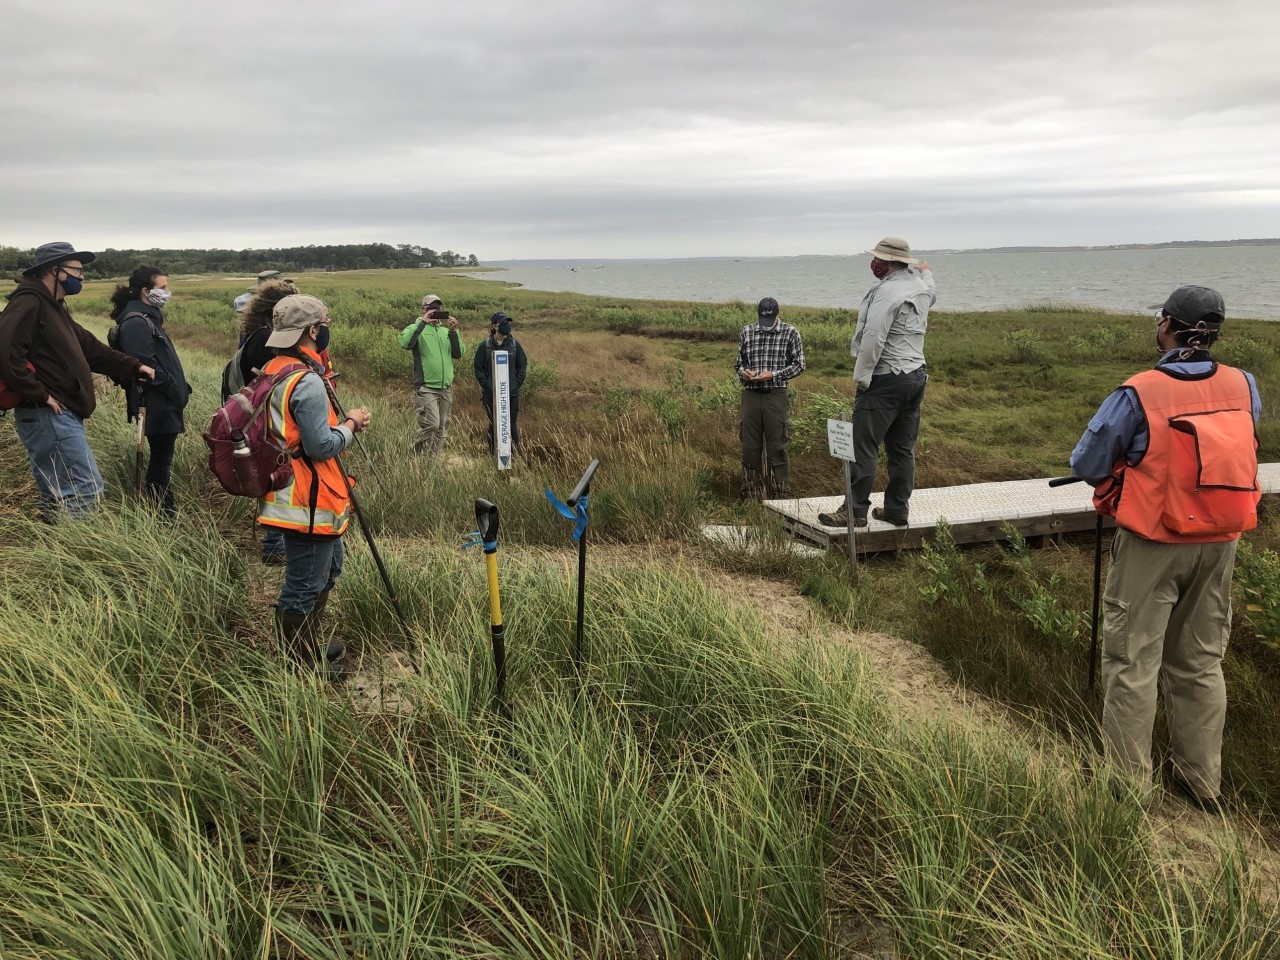 Coastal Processes Specialist Greg Berman helped lead a workshop for the Association of Massachusetts Wetland Scientists that focused on challenging wetland delineations along the coast of Cape Cod. Here Greg points out some of the features found at Mass Audubon's Long Pasture Wildlife Sanctuary.